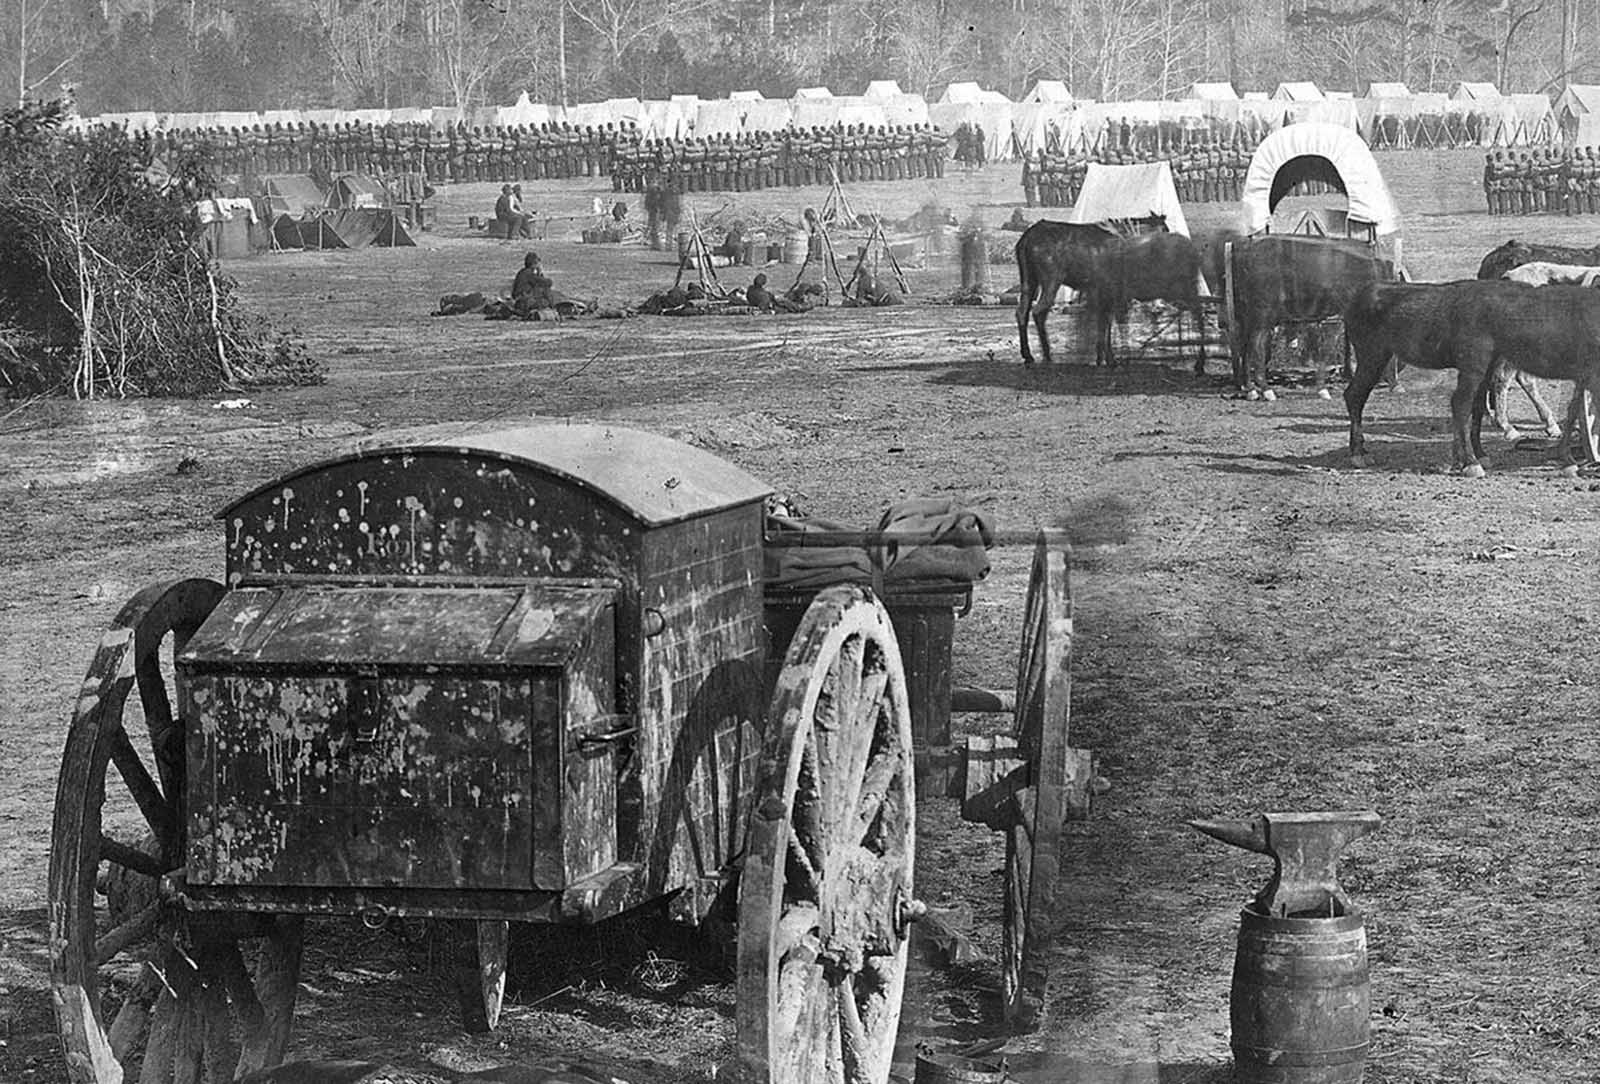 A Federal encampment on the Pamunkey River, Cumberland Landing, Virginia, in May of 1862.